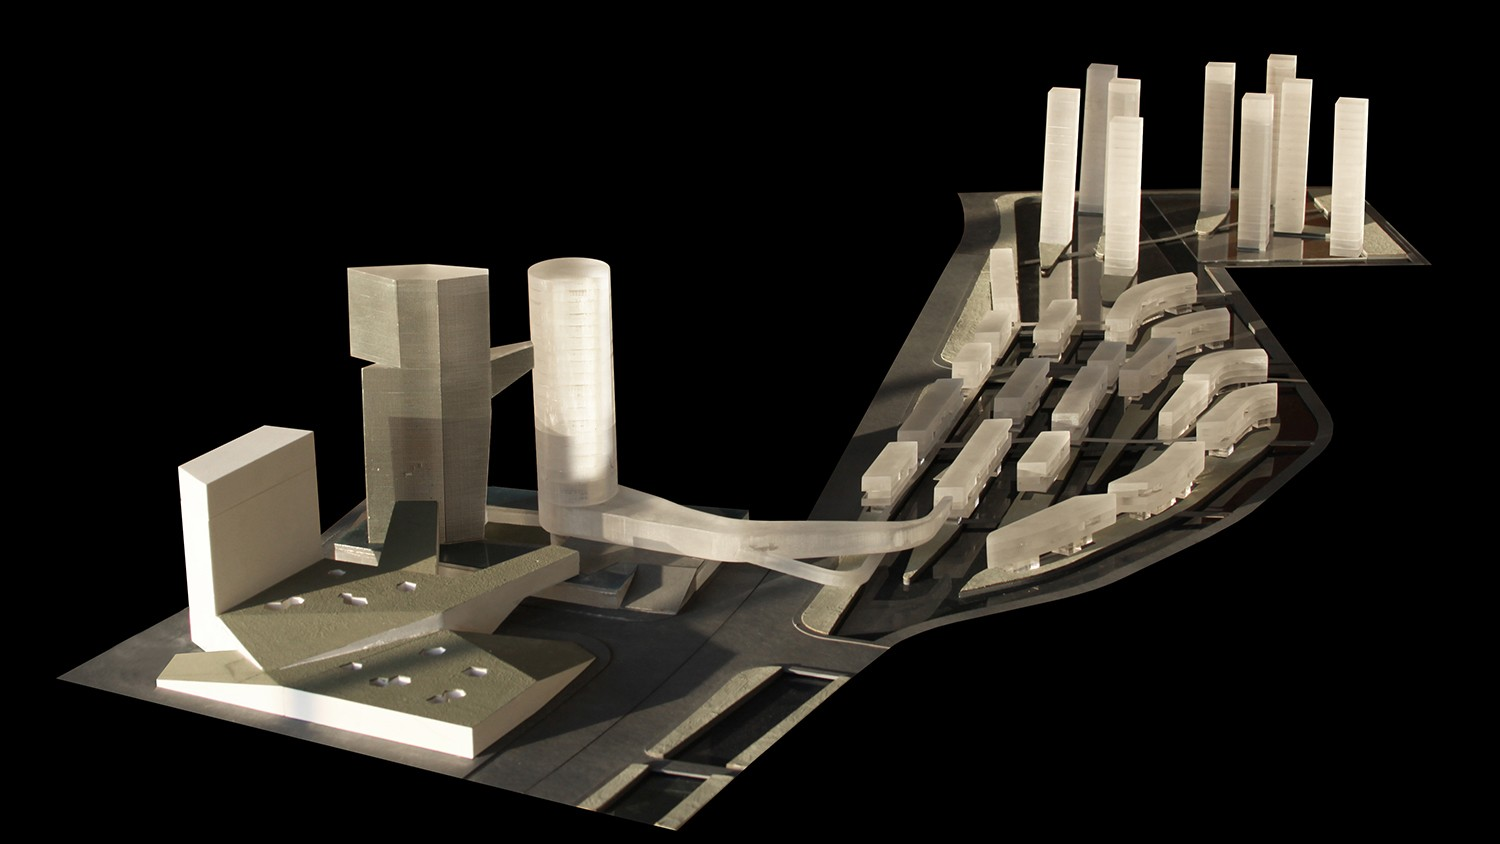 https://stevenholl.sfo2.digitaloceanspaces.com/uploads/projects/project-images/StevenHollArchitects_ShanShui_OverallModel1_WH.jpg